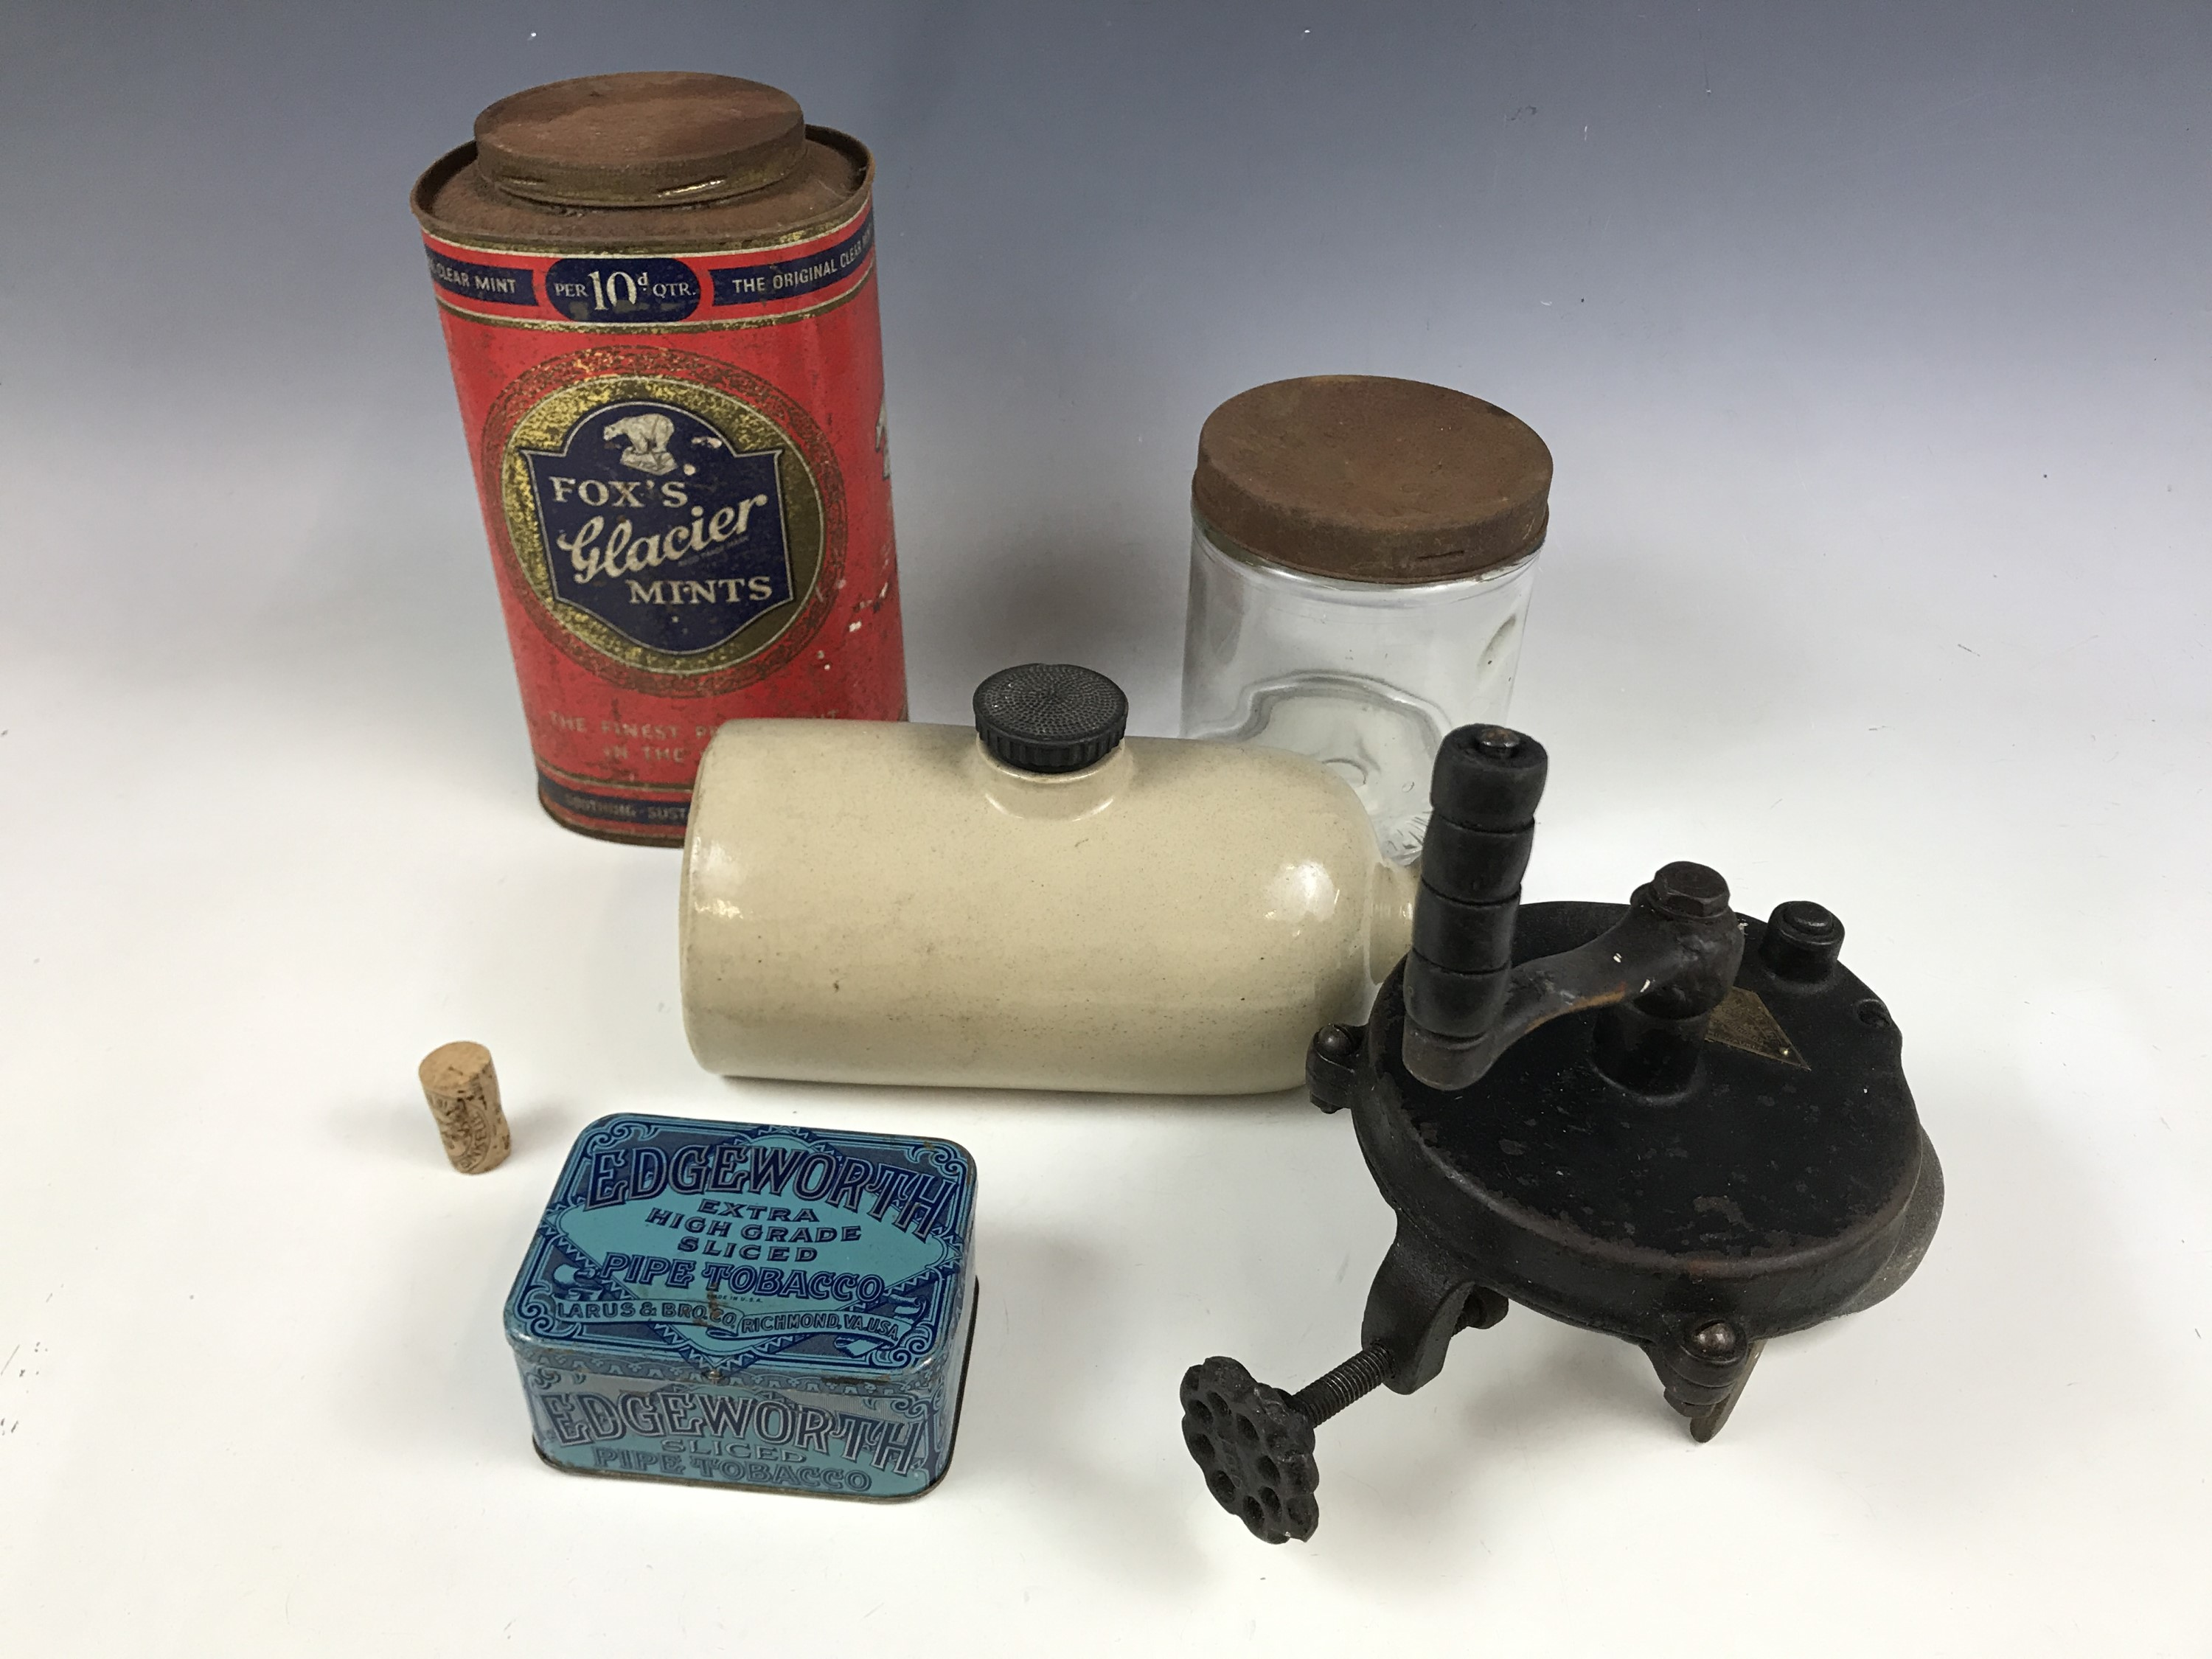 Lot 1 - A stoneware hot water bottle together with vintage tins, a Beech-Nut jar and a grinder